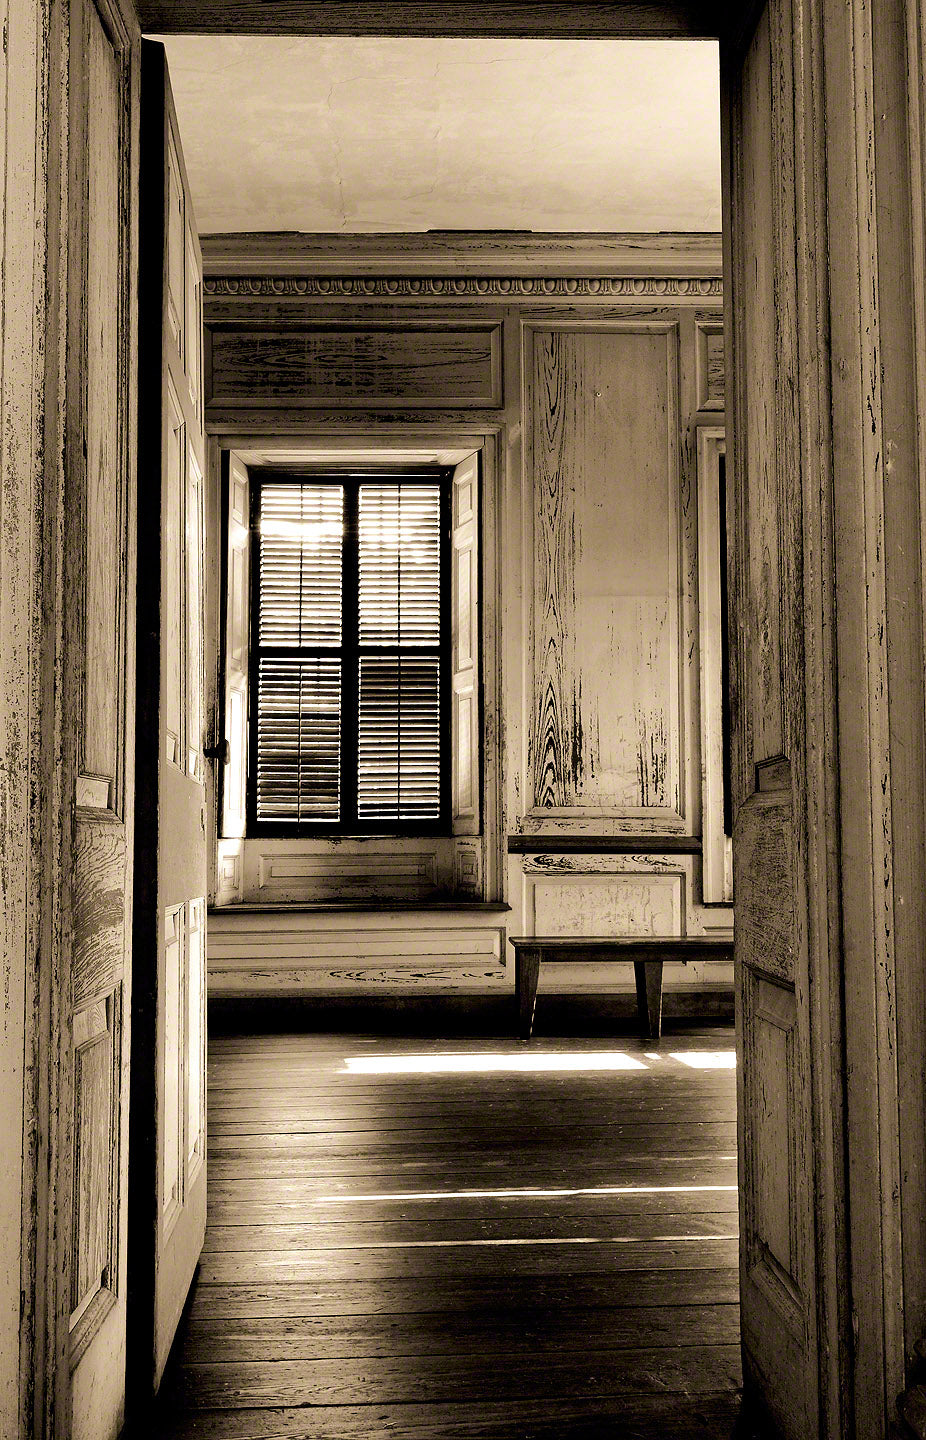 A photograph by Mike Ring of Drayton Hall Plantation